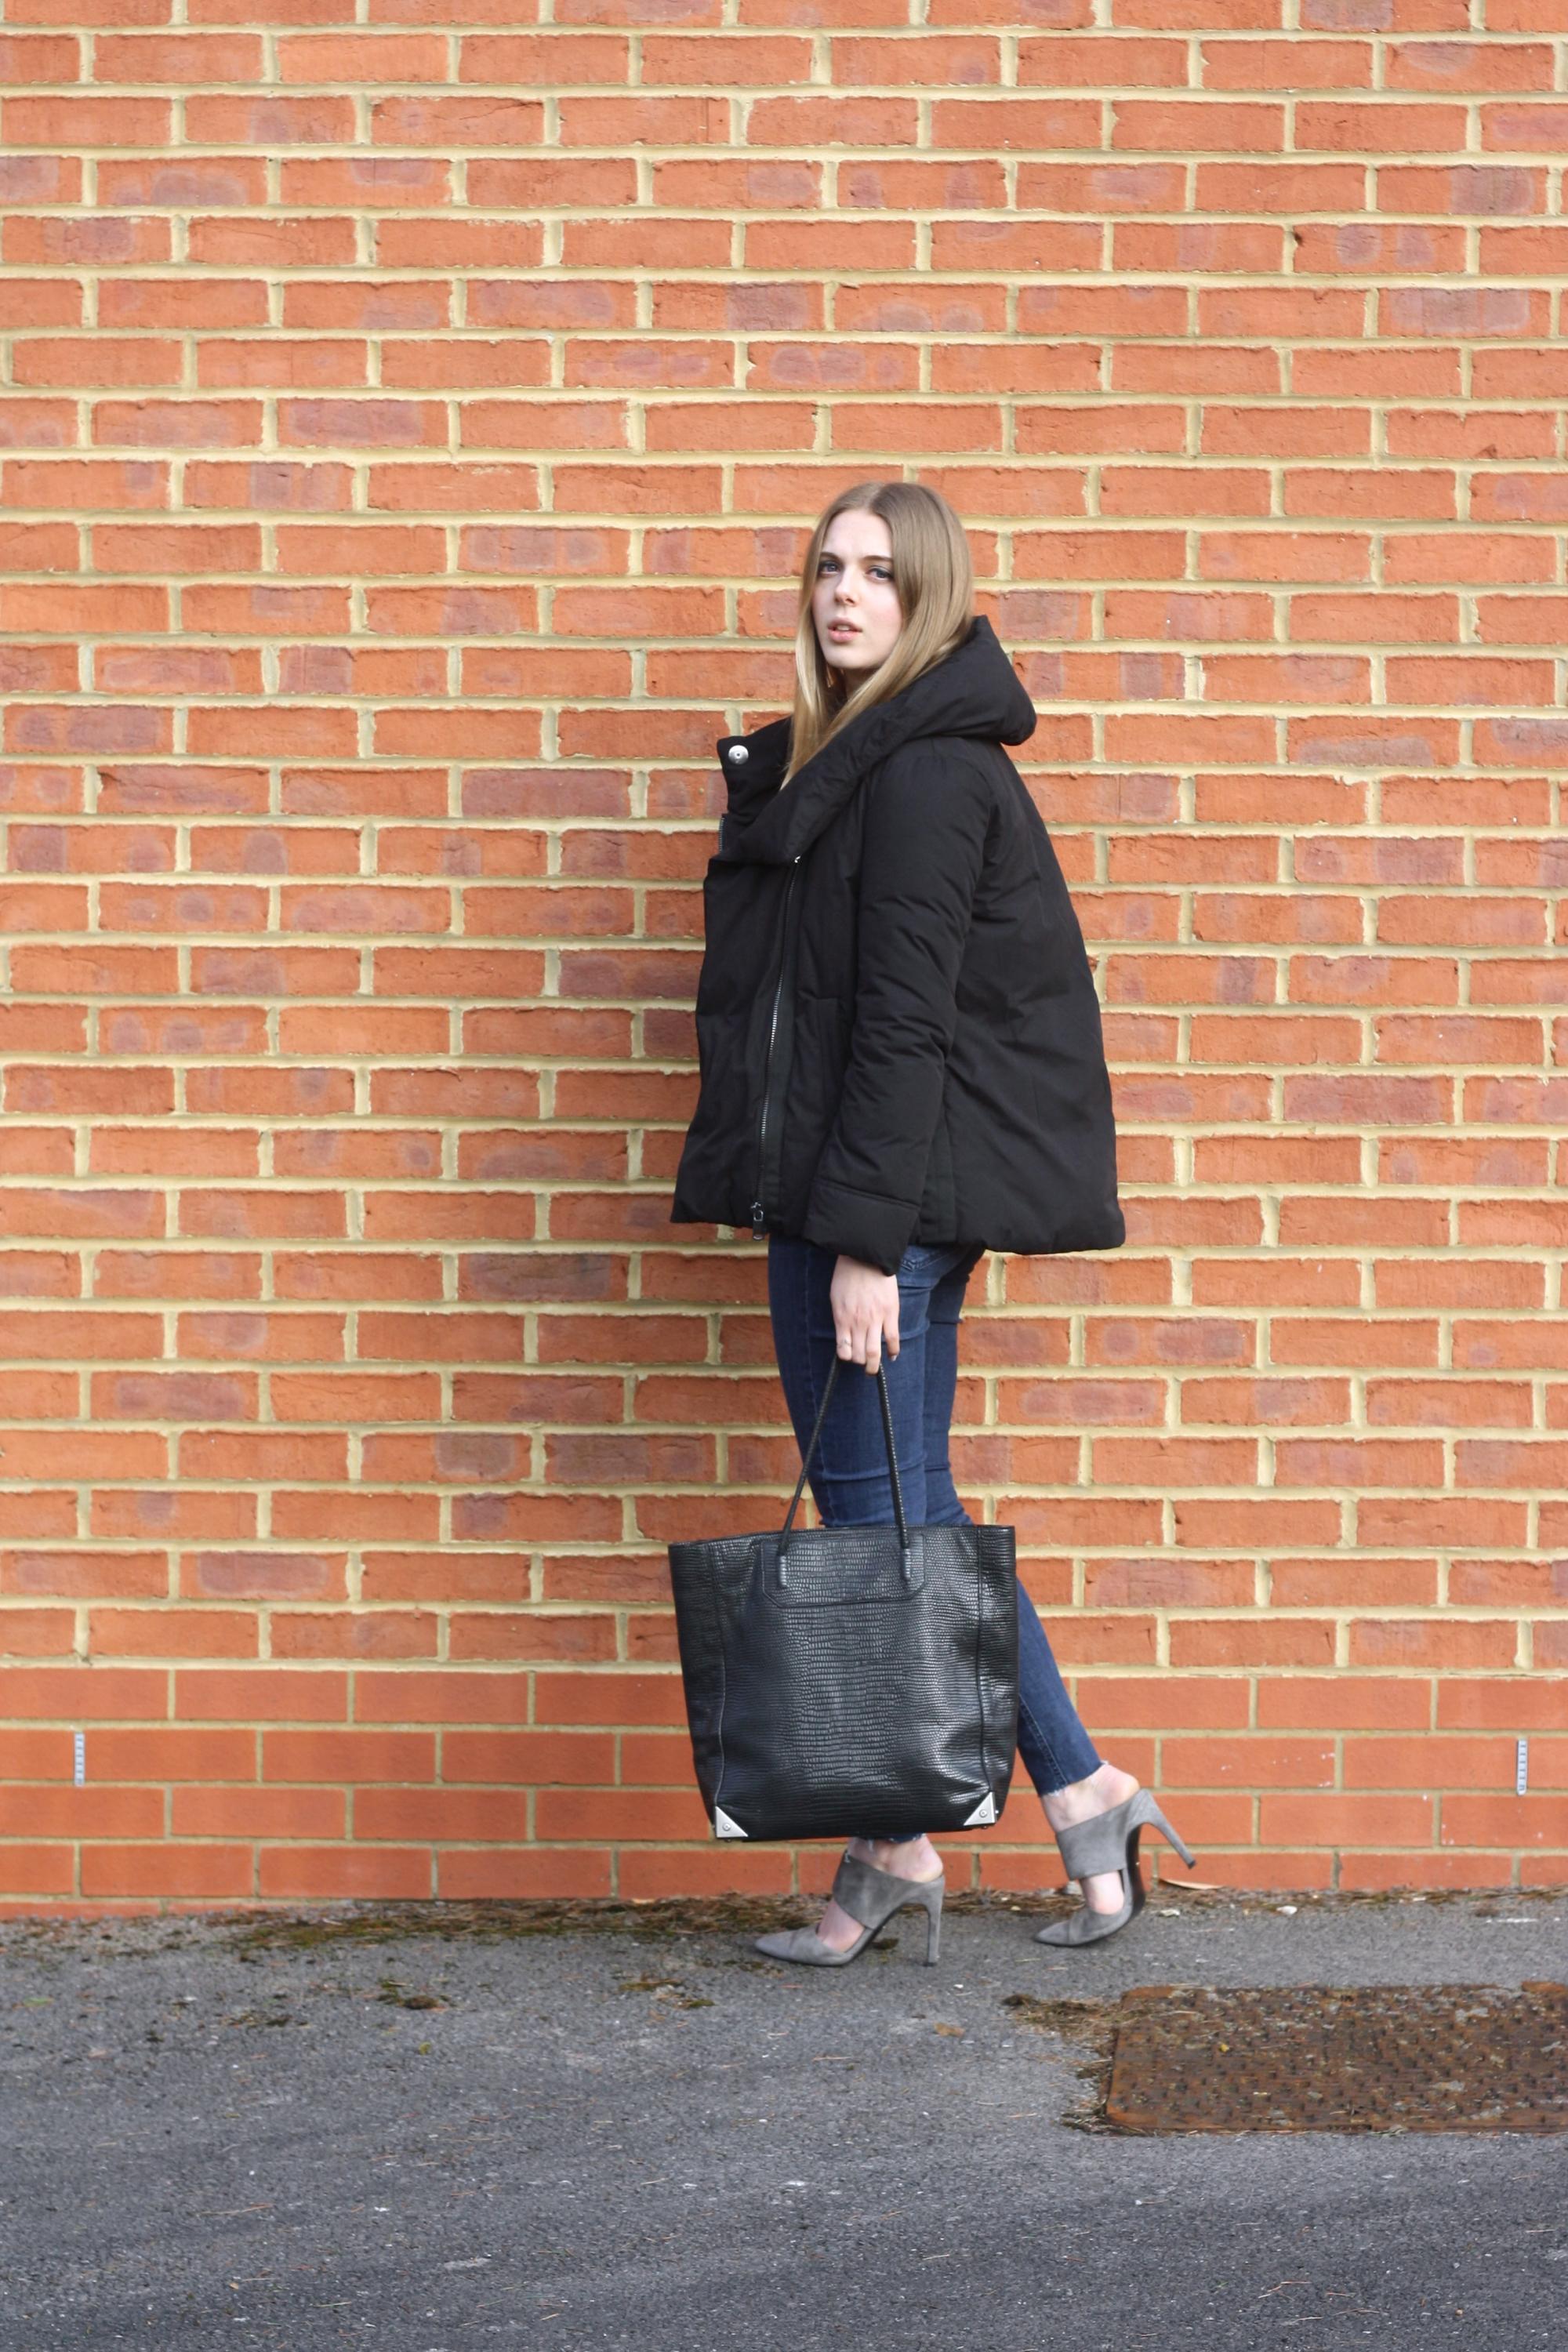 Alexander Wang Prisma black bag, Zara black padded jacket and Topshop Jamie indigo jeans